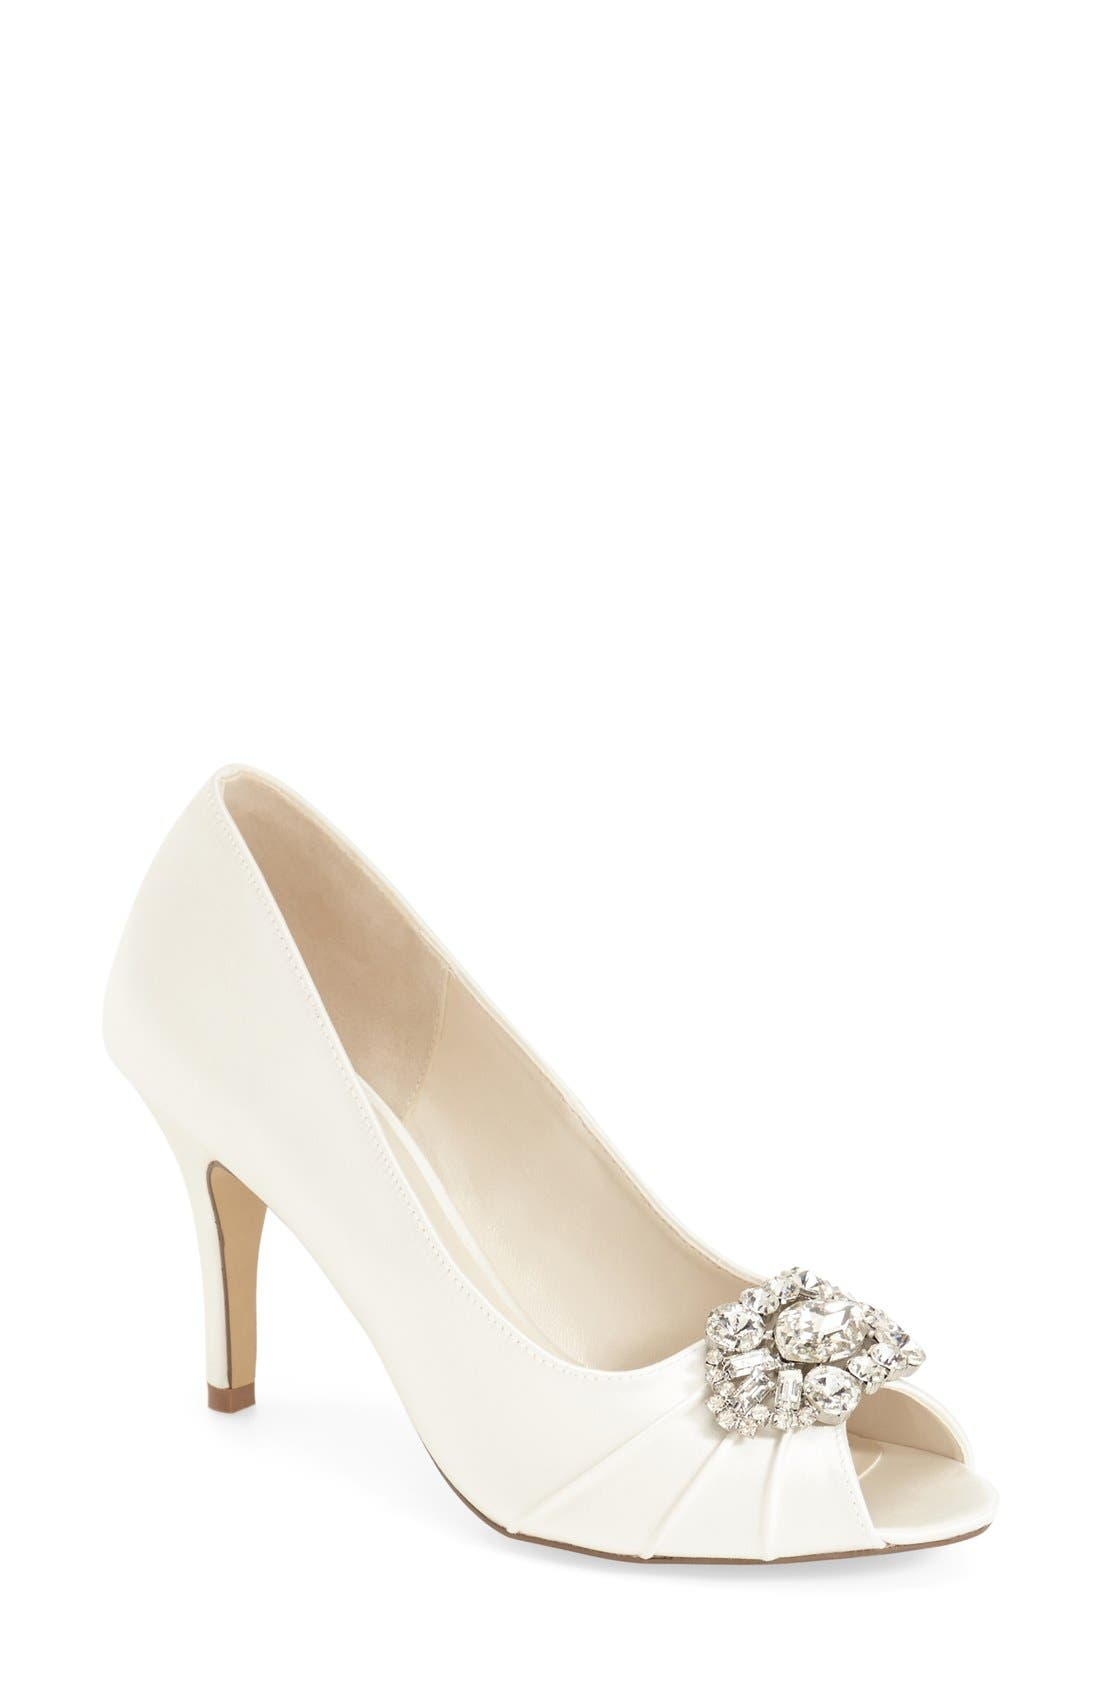 'Tender' Open Toe Pump,                             Main thumbnail 1, color,                             IVORY SATIN